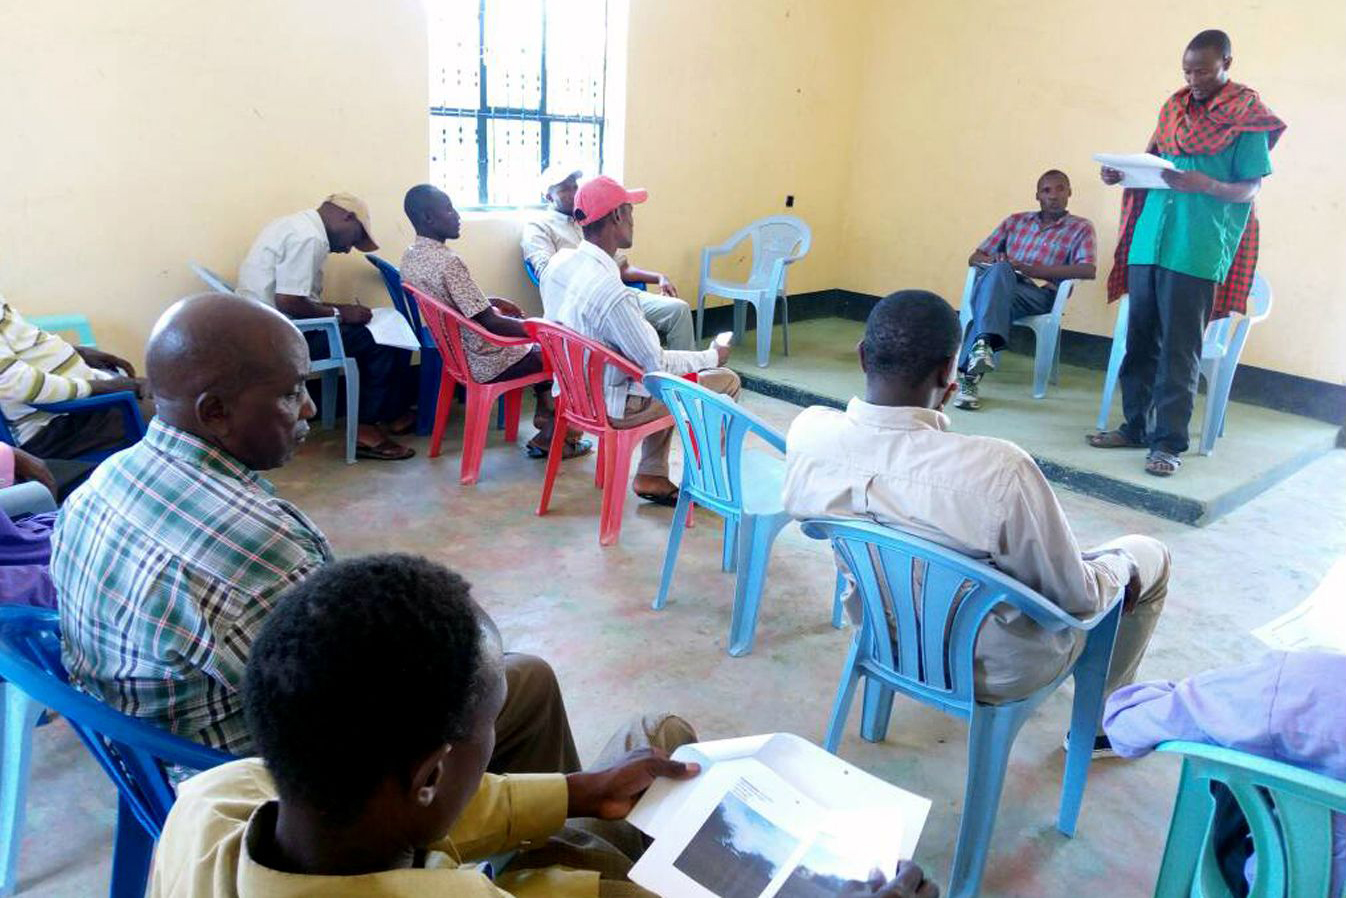 A grazing committee discusses the management of their rangelands in northern Tanzania.